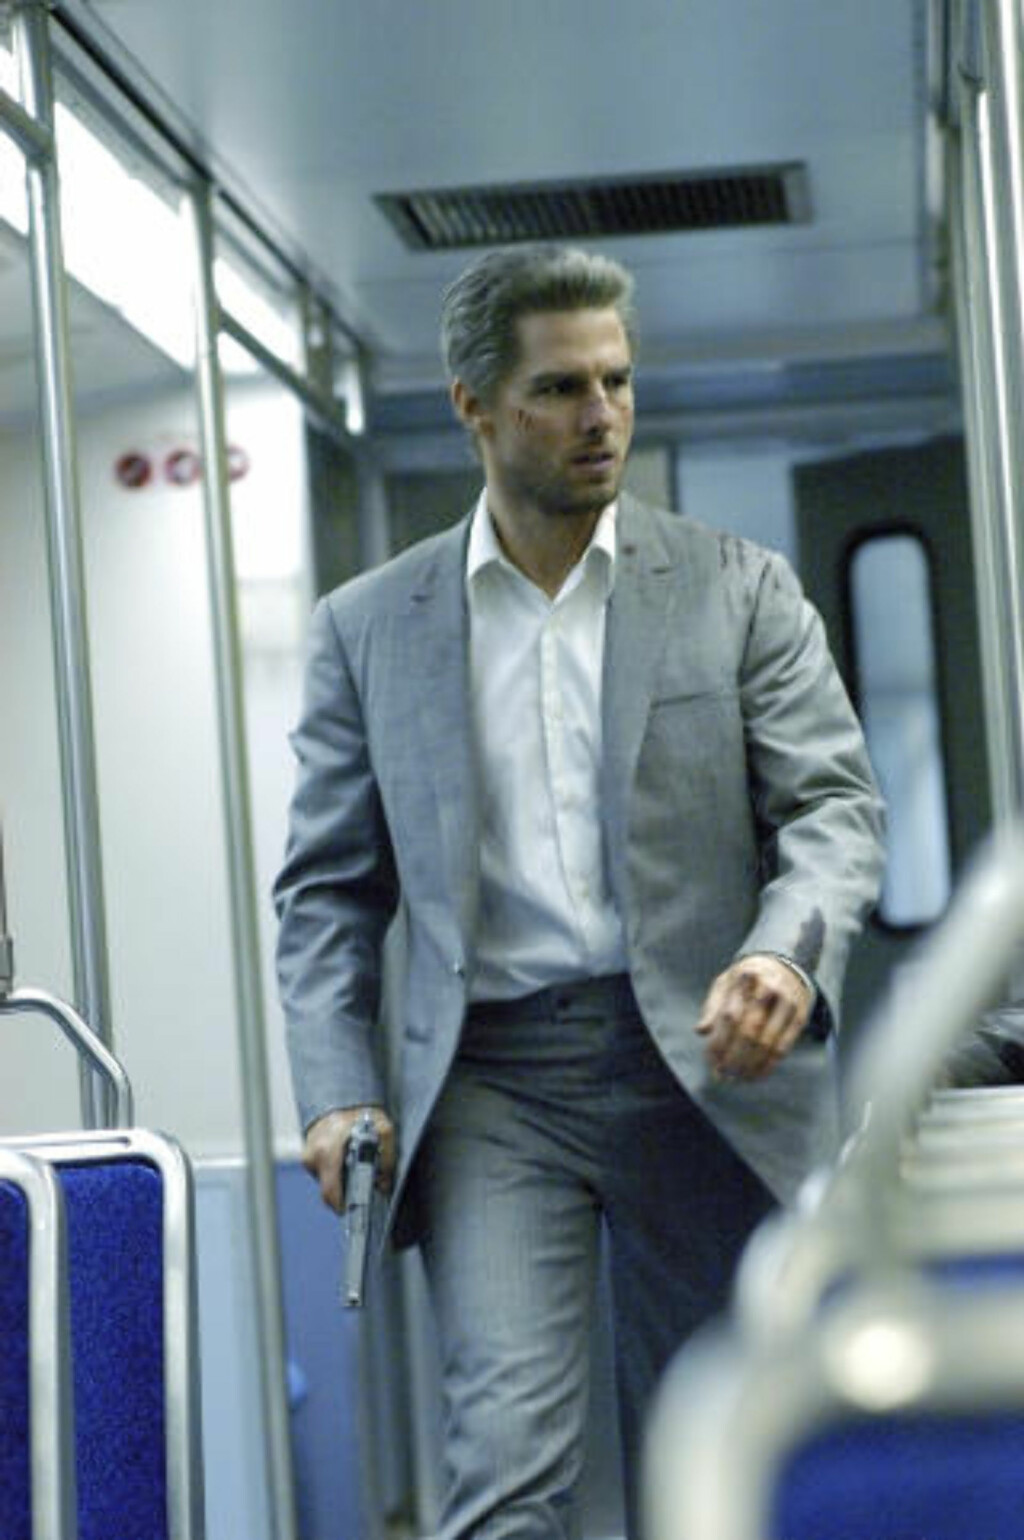 LEIEMORDER: I 2004 spilte Tom Cruise leiemorderen Vincent i «Collateral».